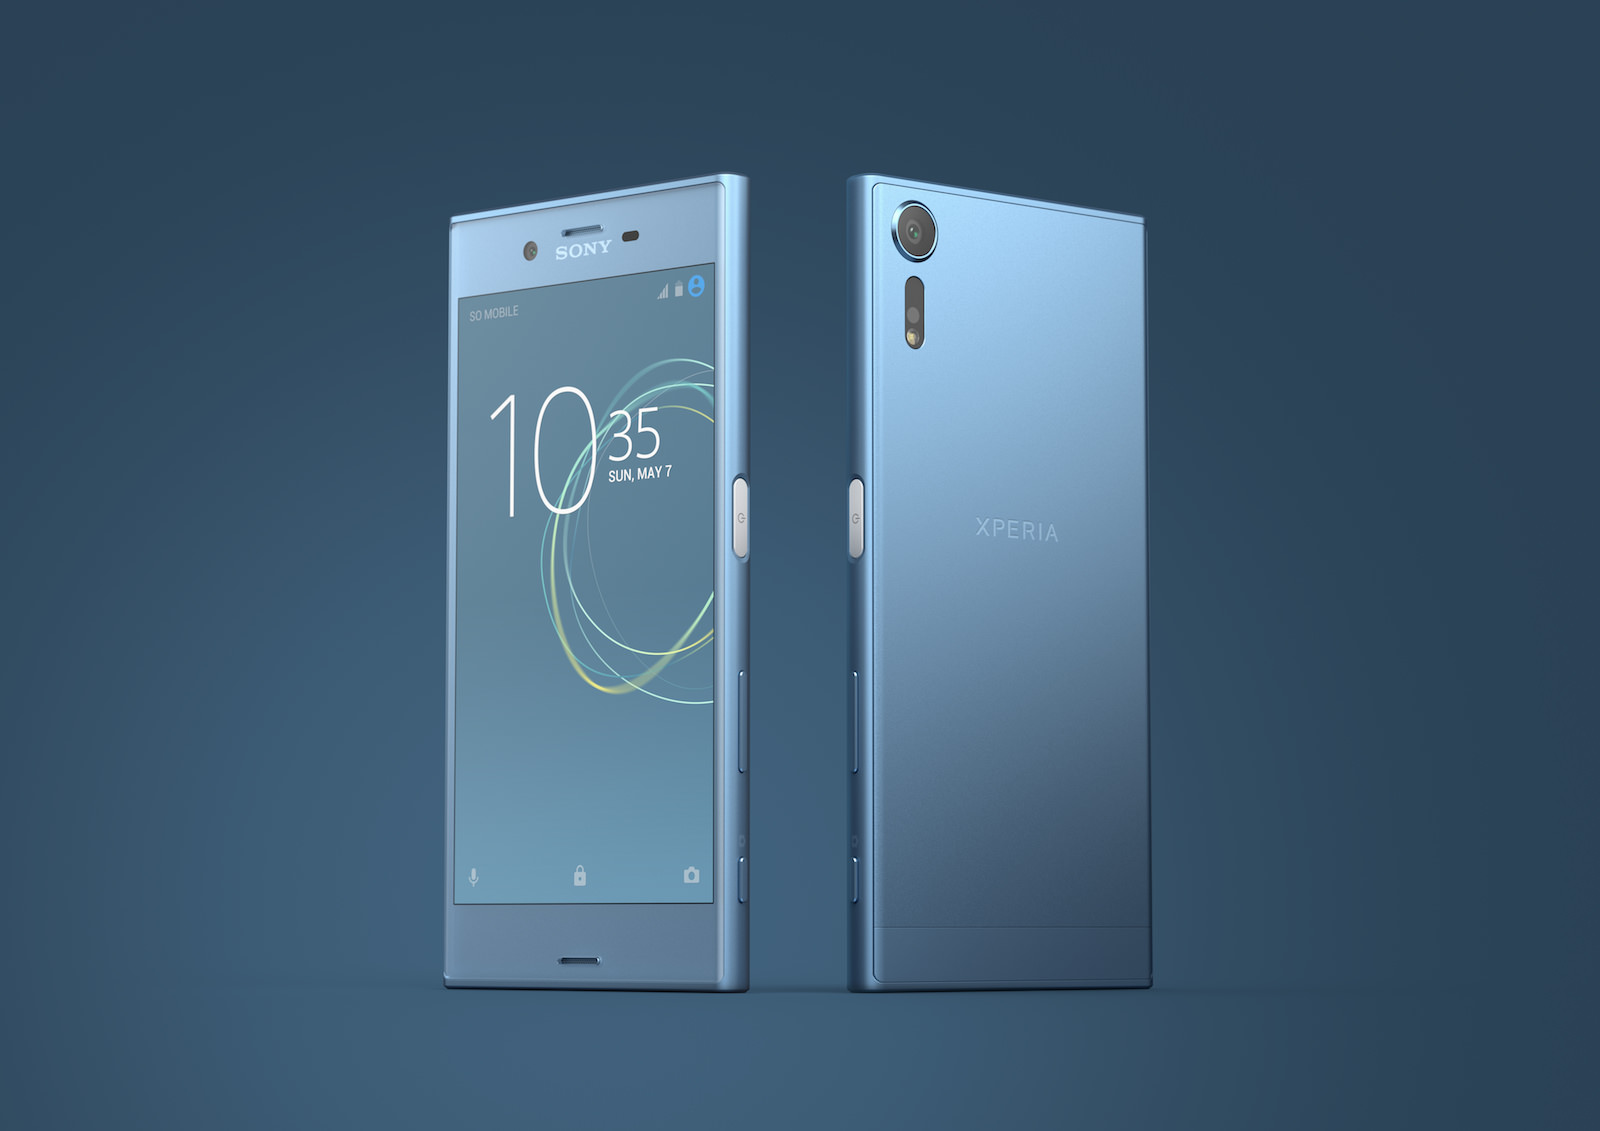 Sony Phone On Amazon Xperia Xz Premium Pre Orders Show Up On Amazon With A